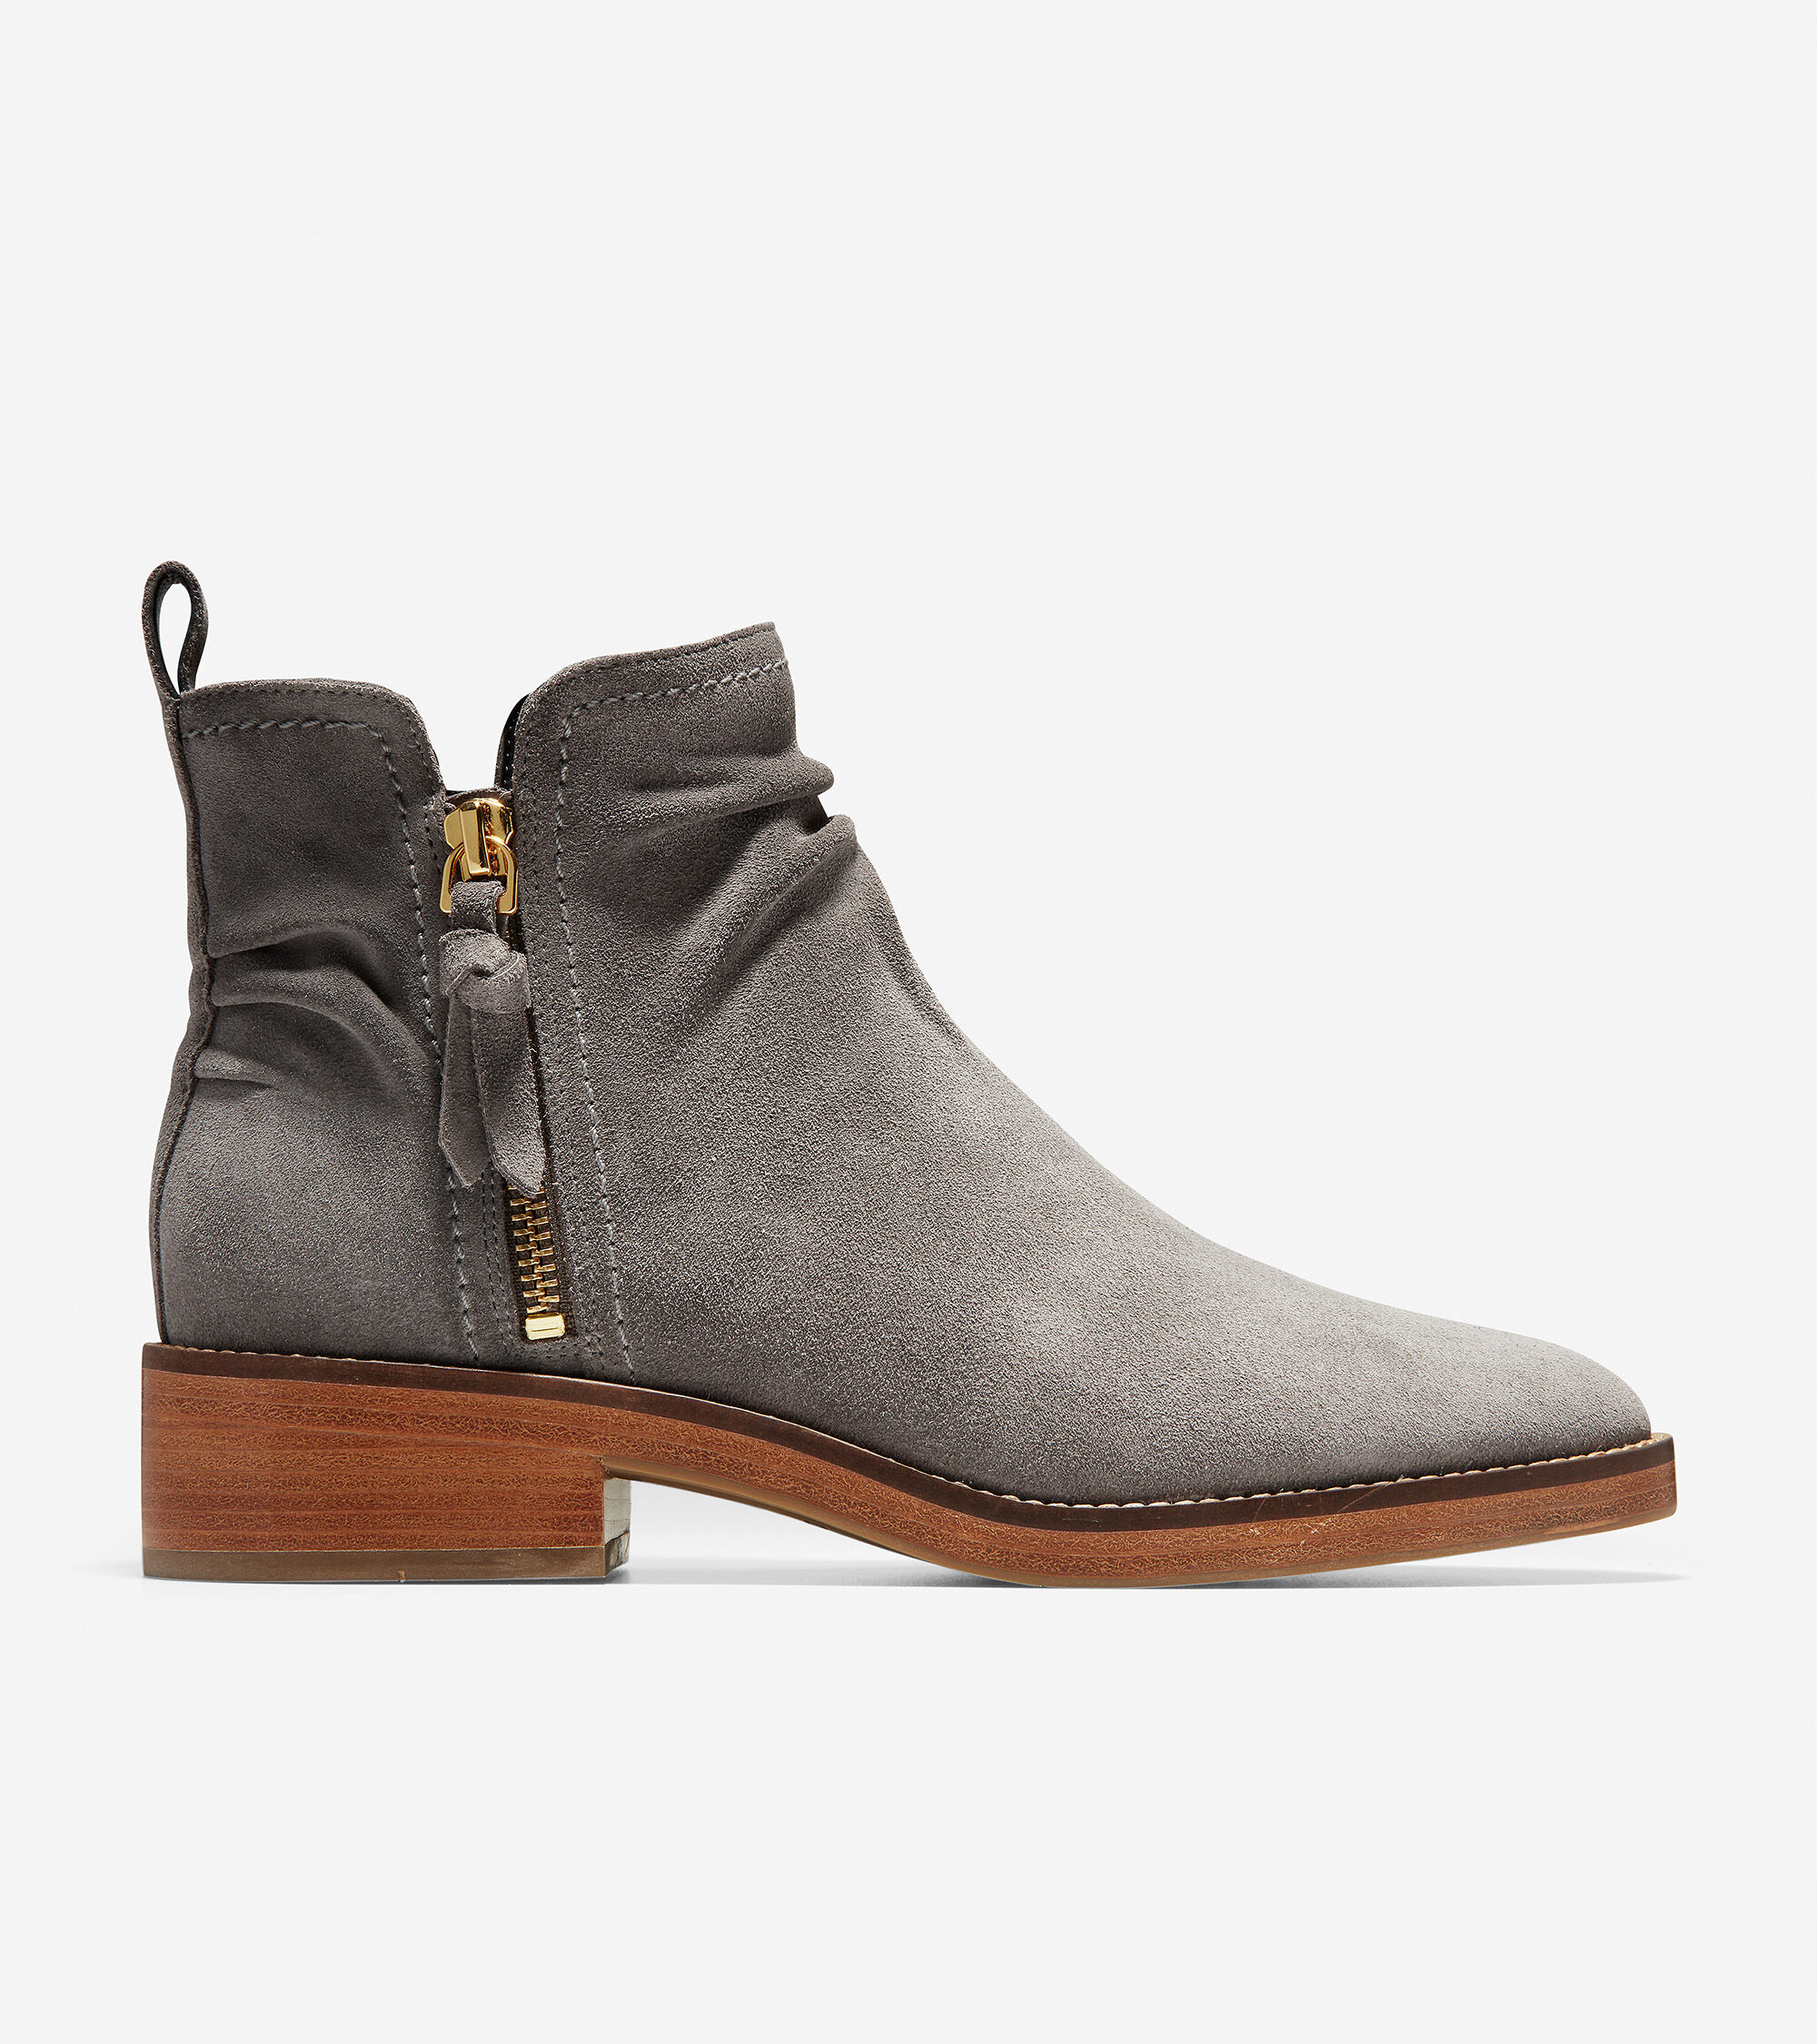 Suede upper with ruched detail and side zippers. Lined in fabric. Padded leather sock lining. TPU outsole with welt. Lightweight Grand 360 outsole cushioned with GRANDFØAM for ultimate comfort. 35mm 1.4 inch stacked heel.